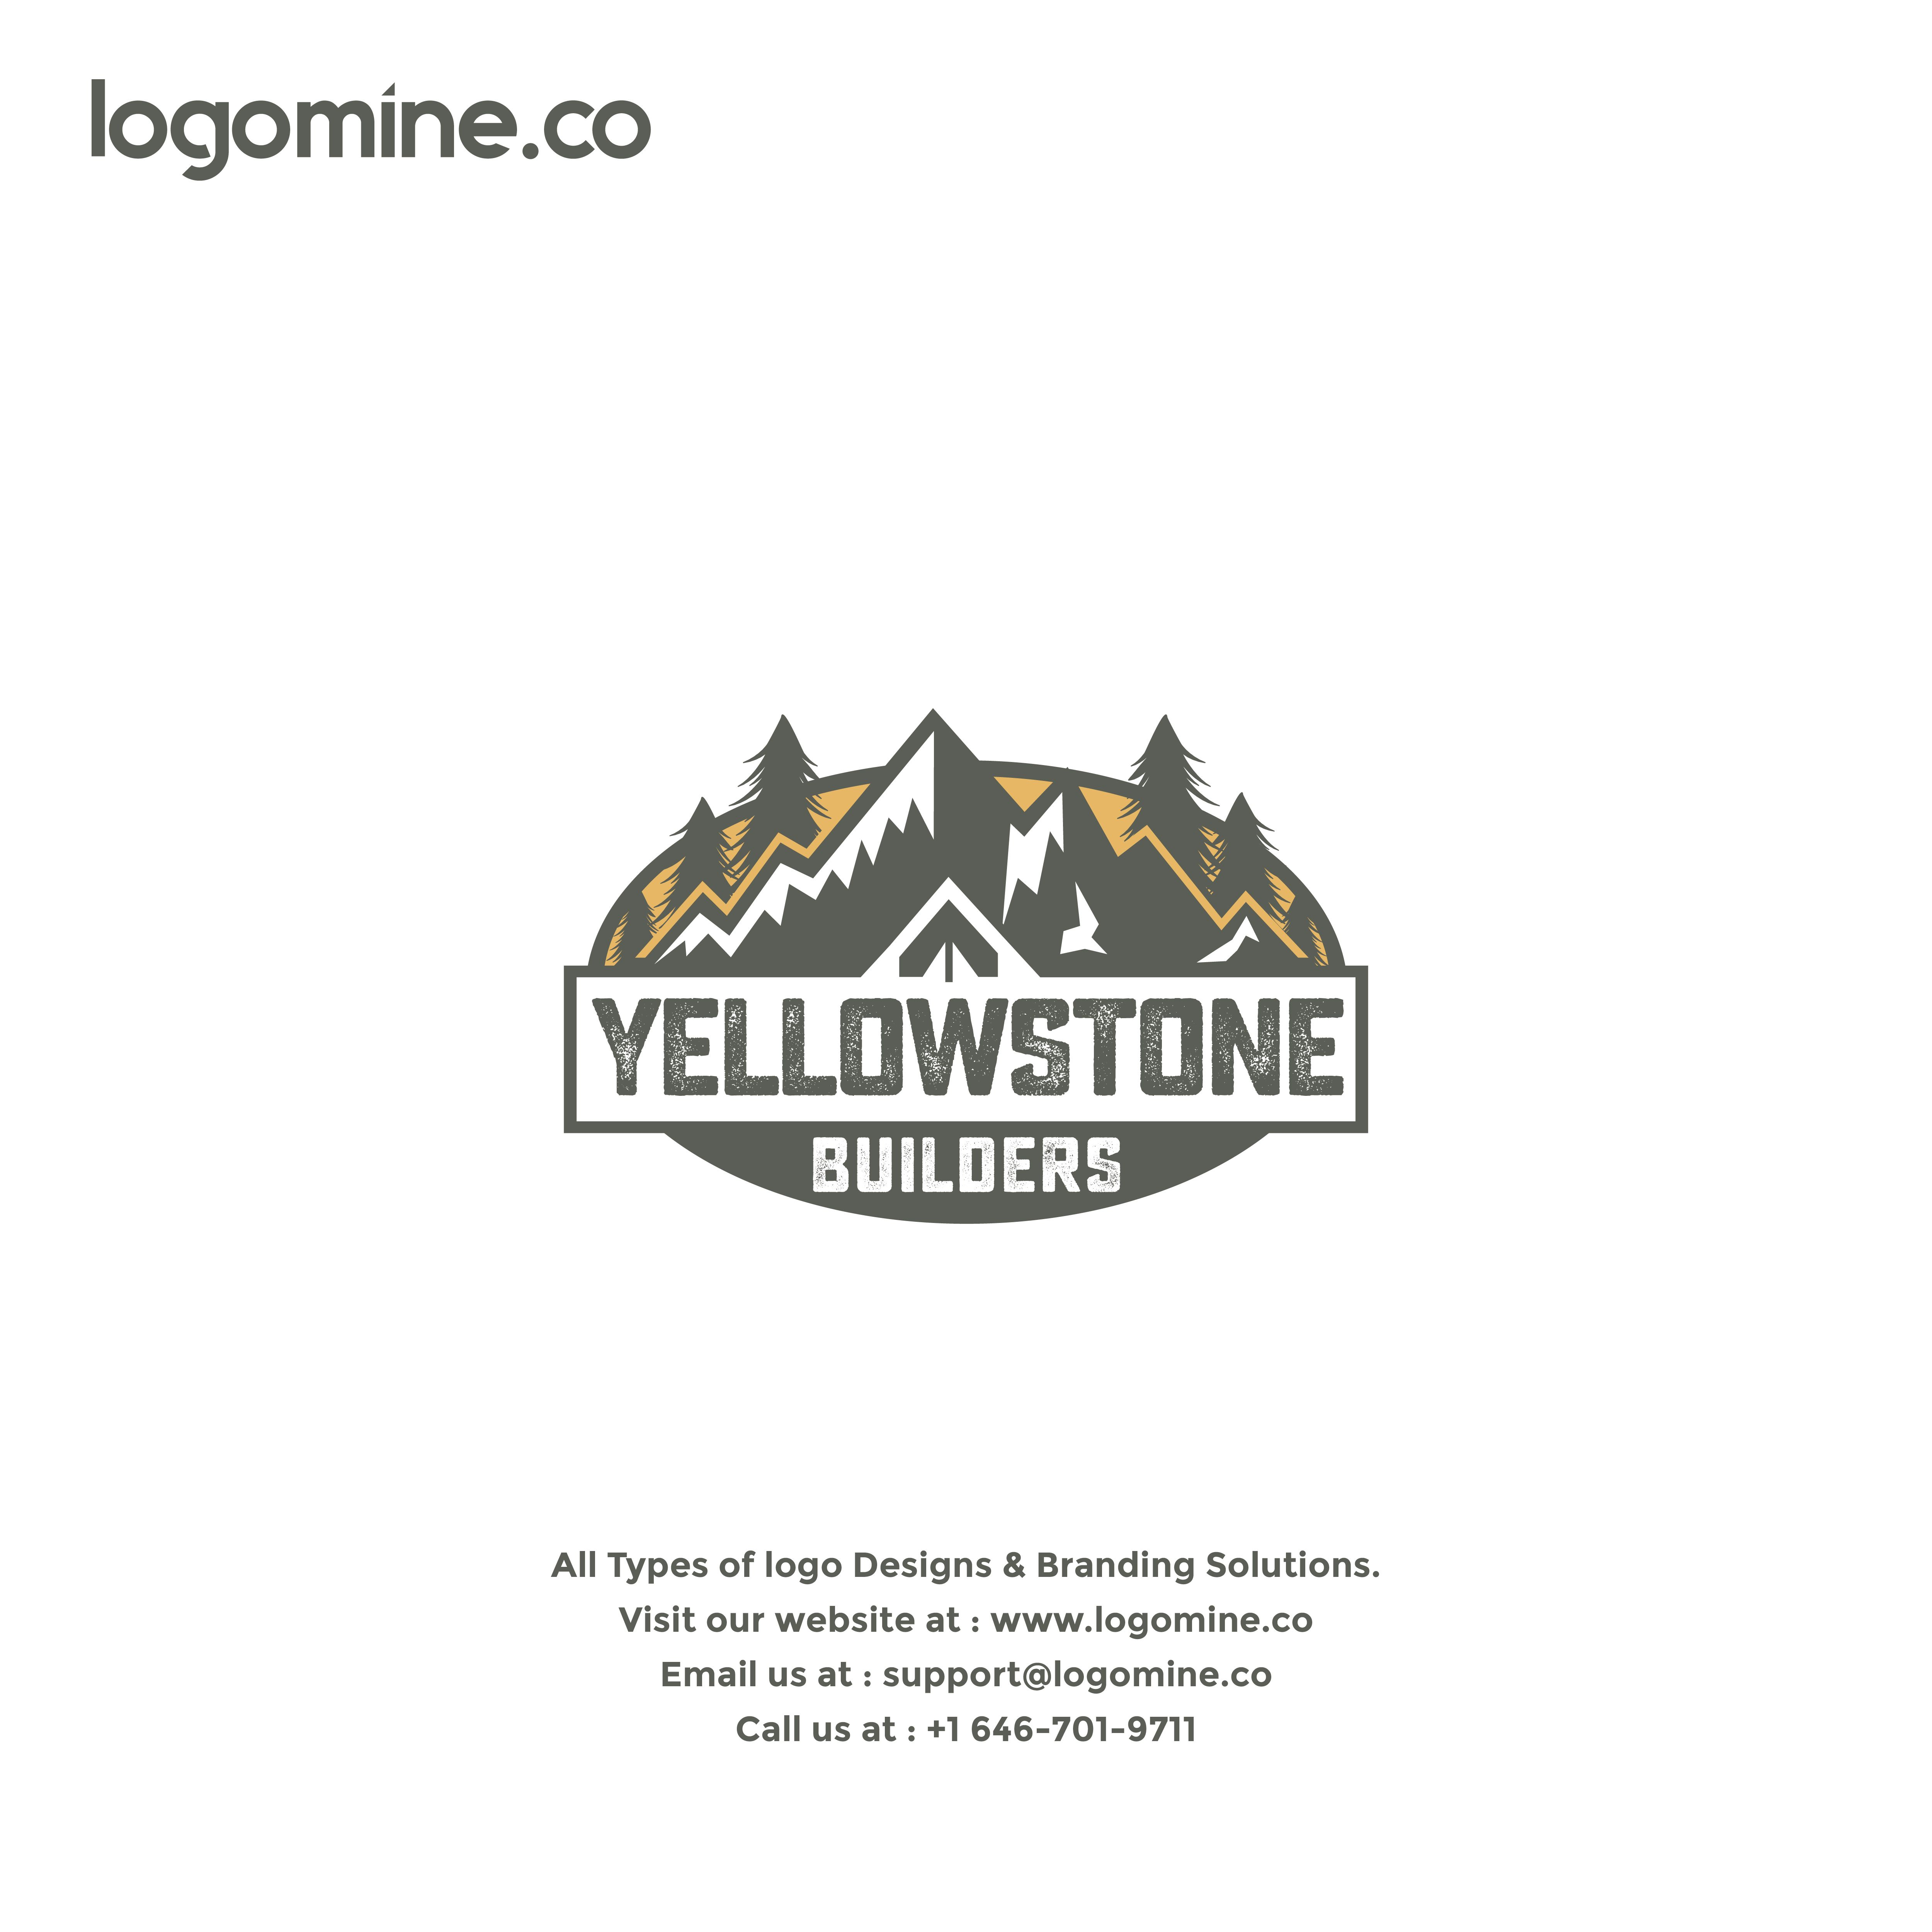 Professionally designed for yellow stone builders in 2020